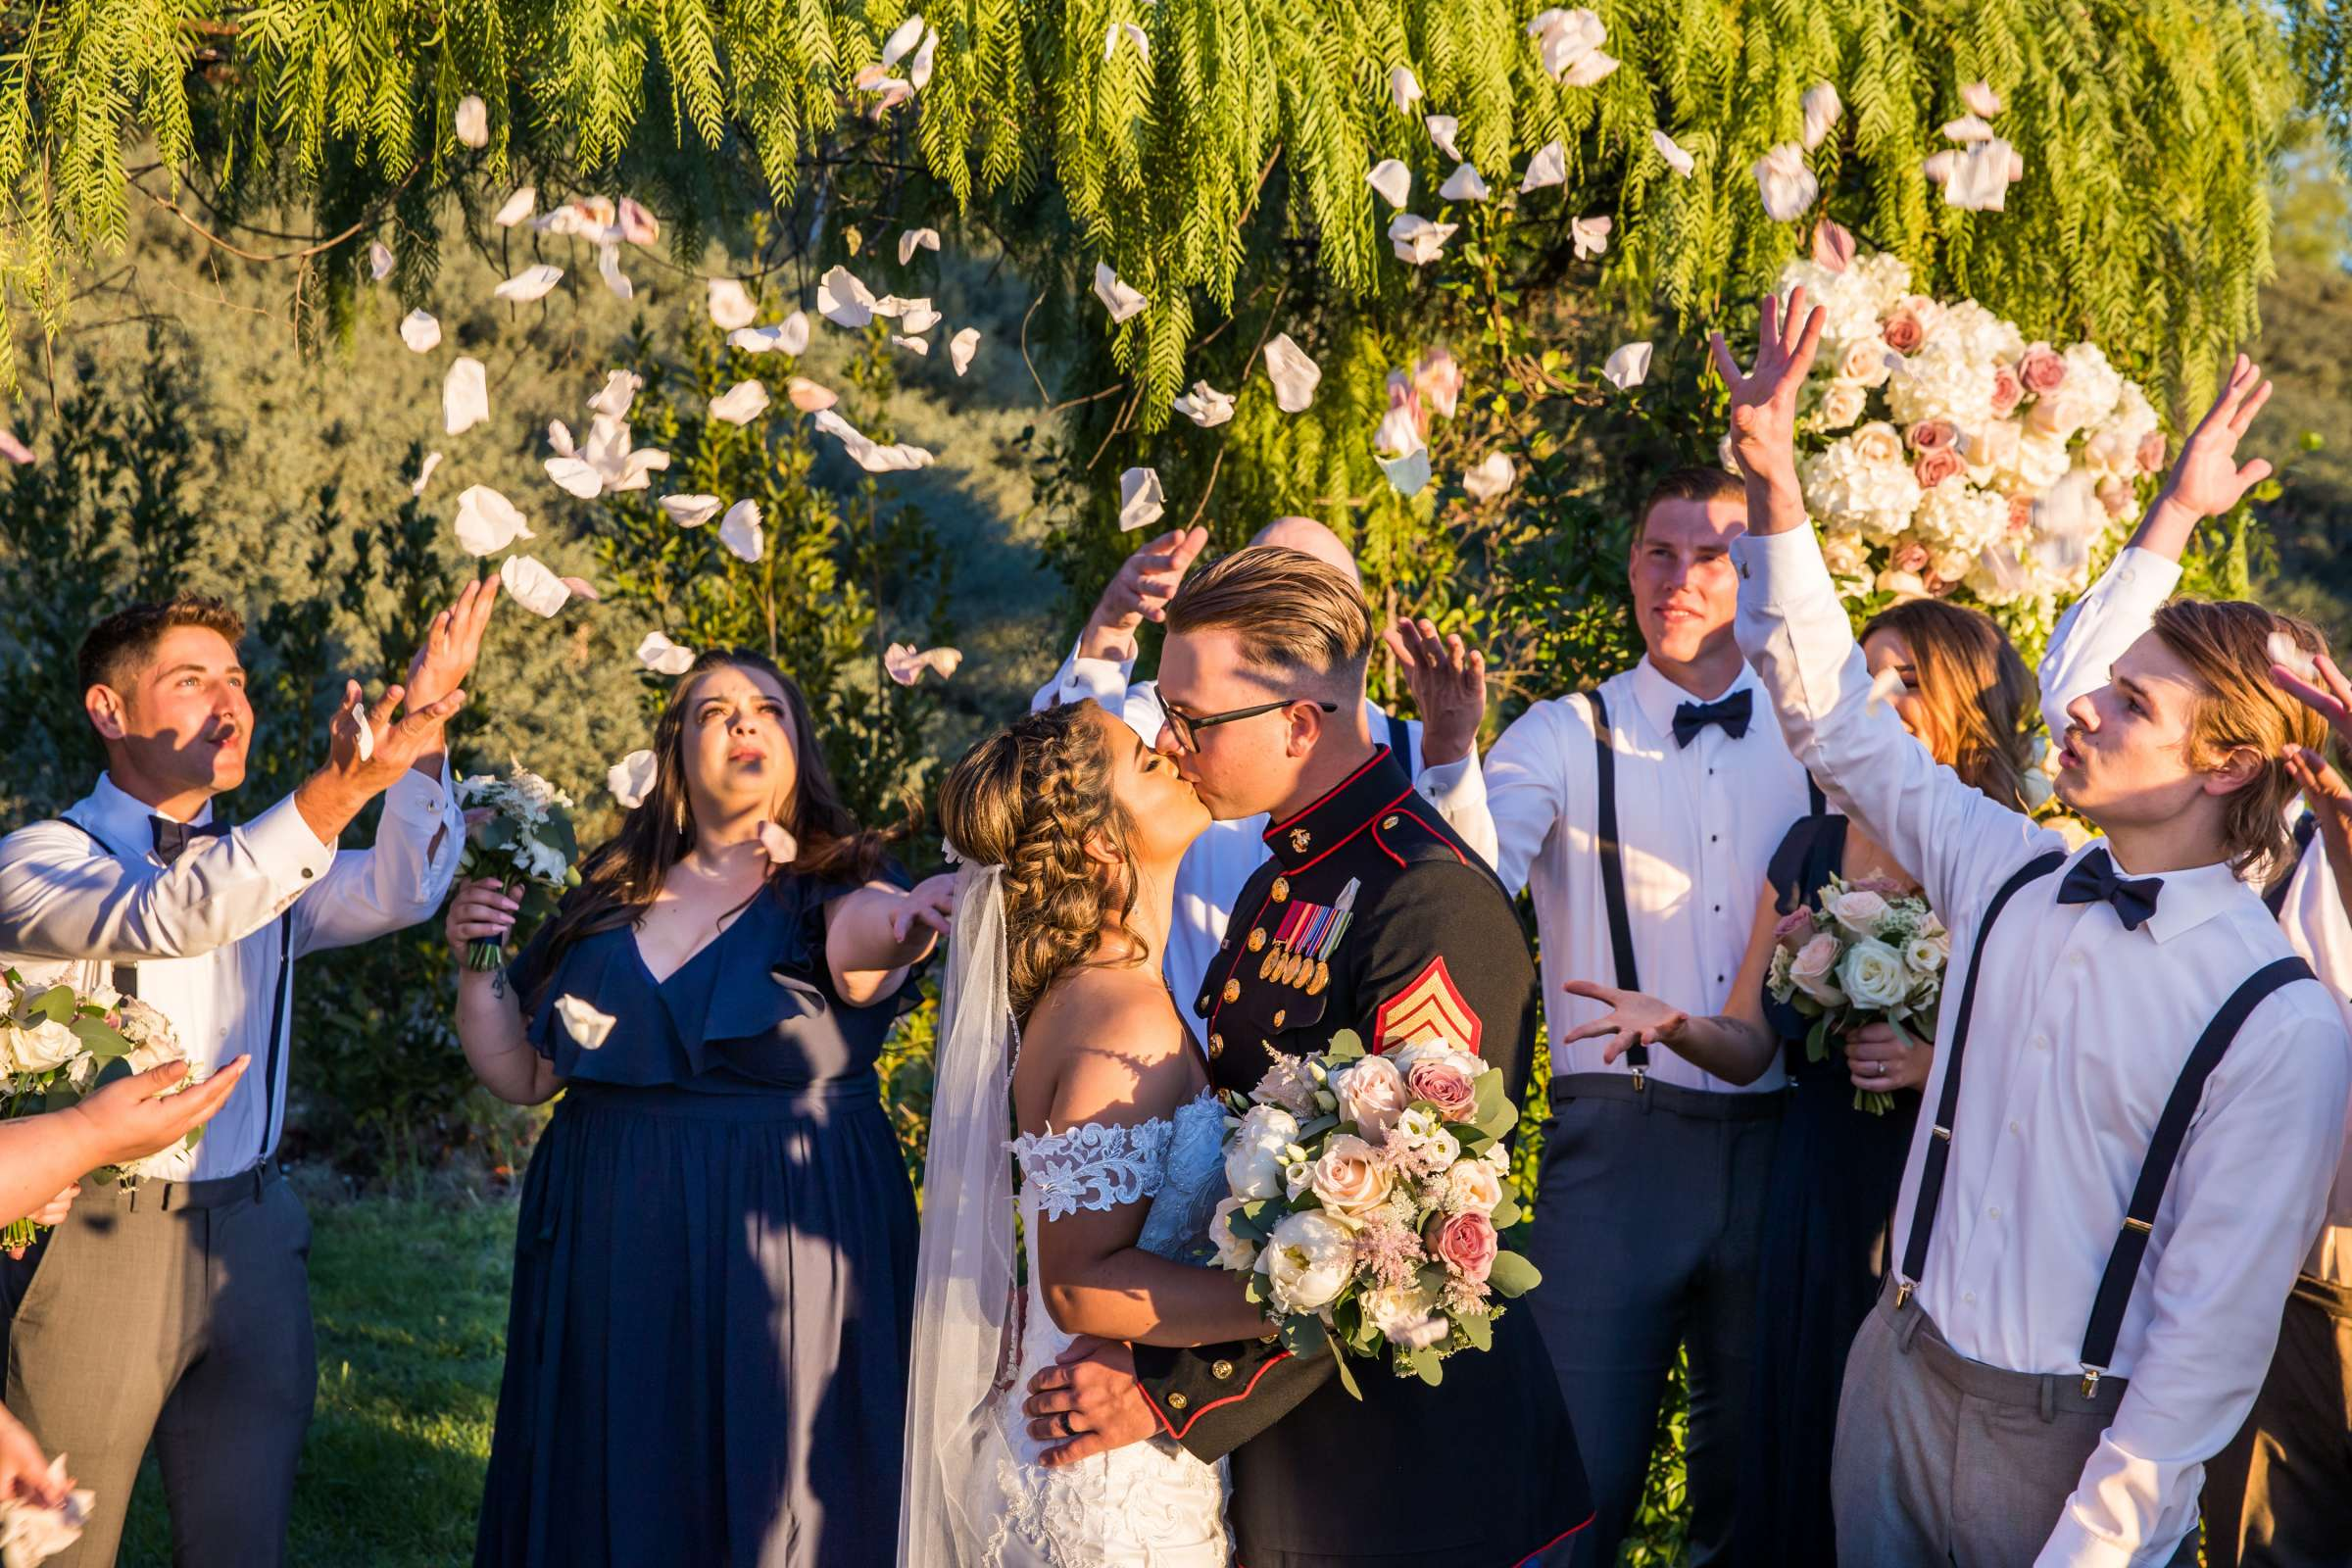 Ethereal Gardens Wedding, Danielle and Ben Wedding Photo #15 by True Photography